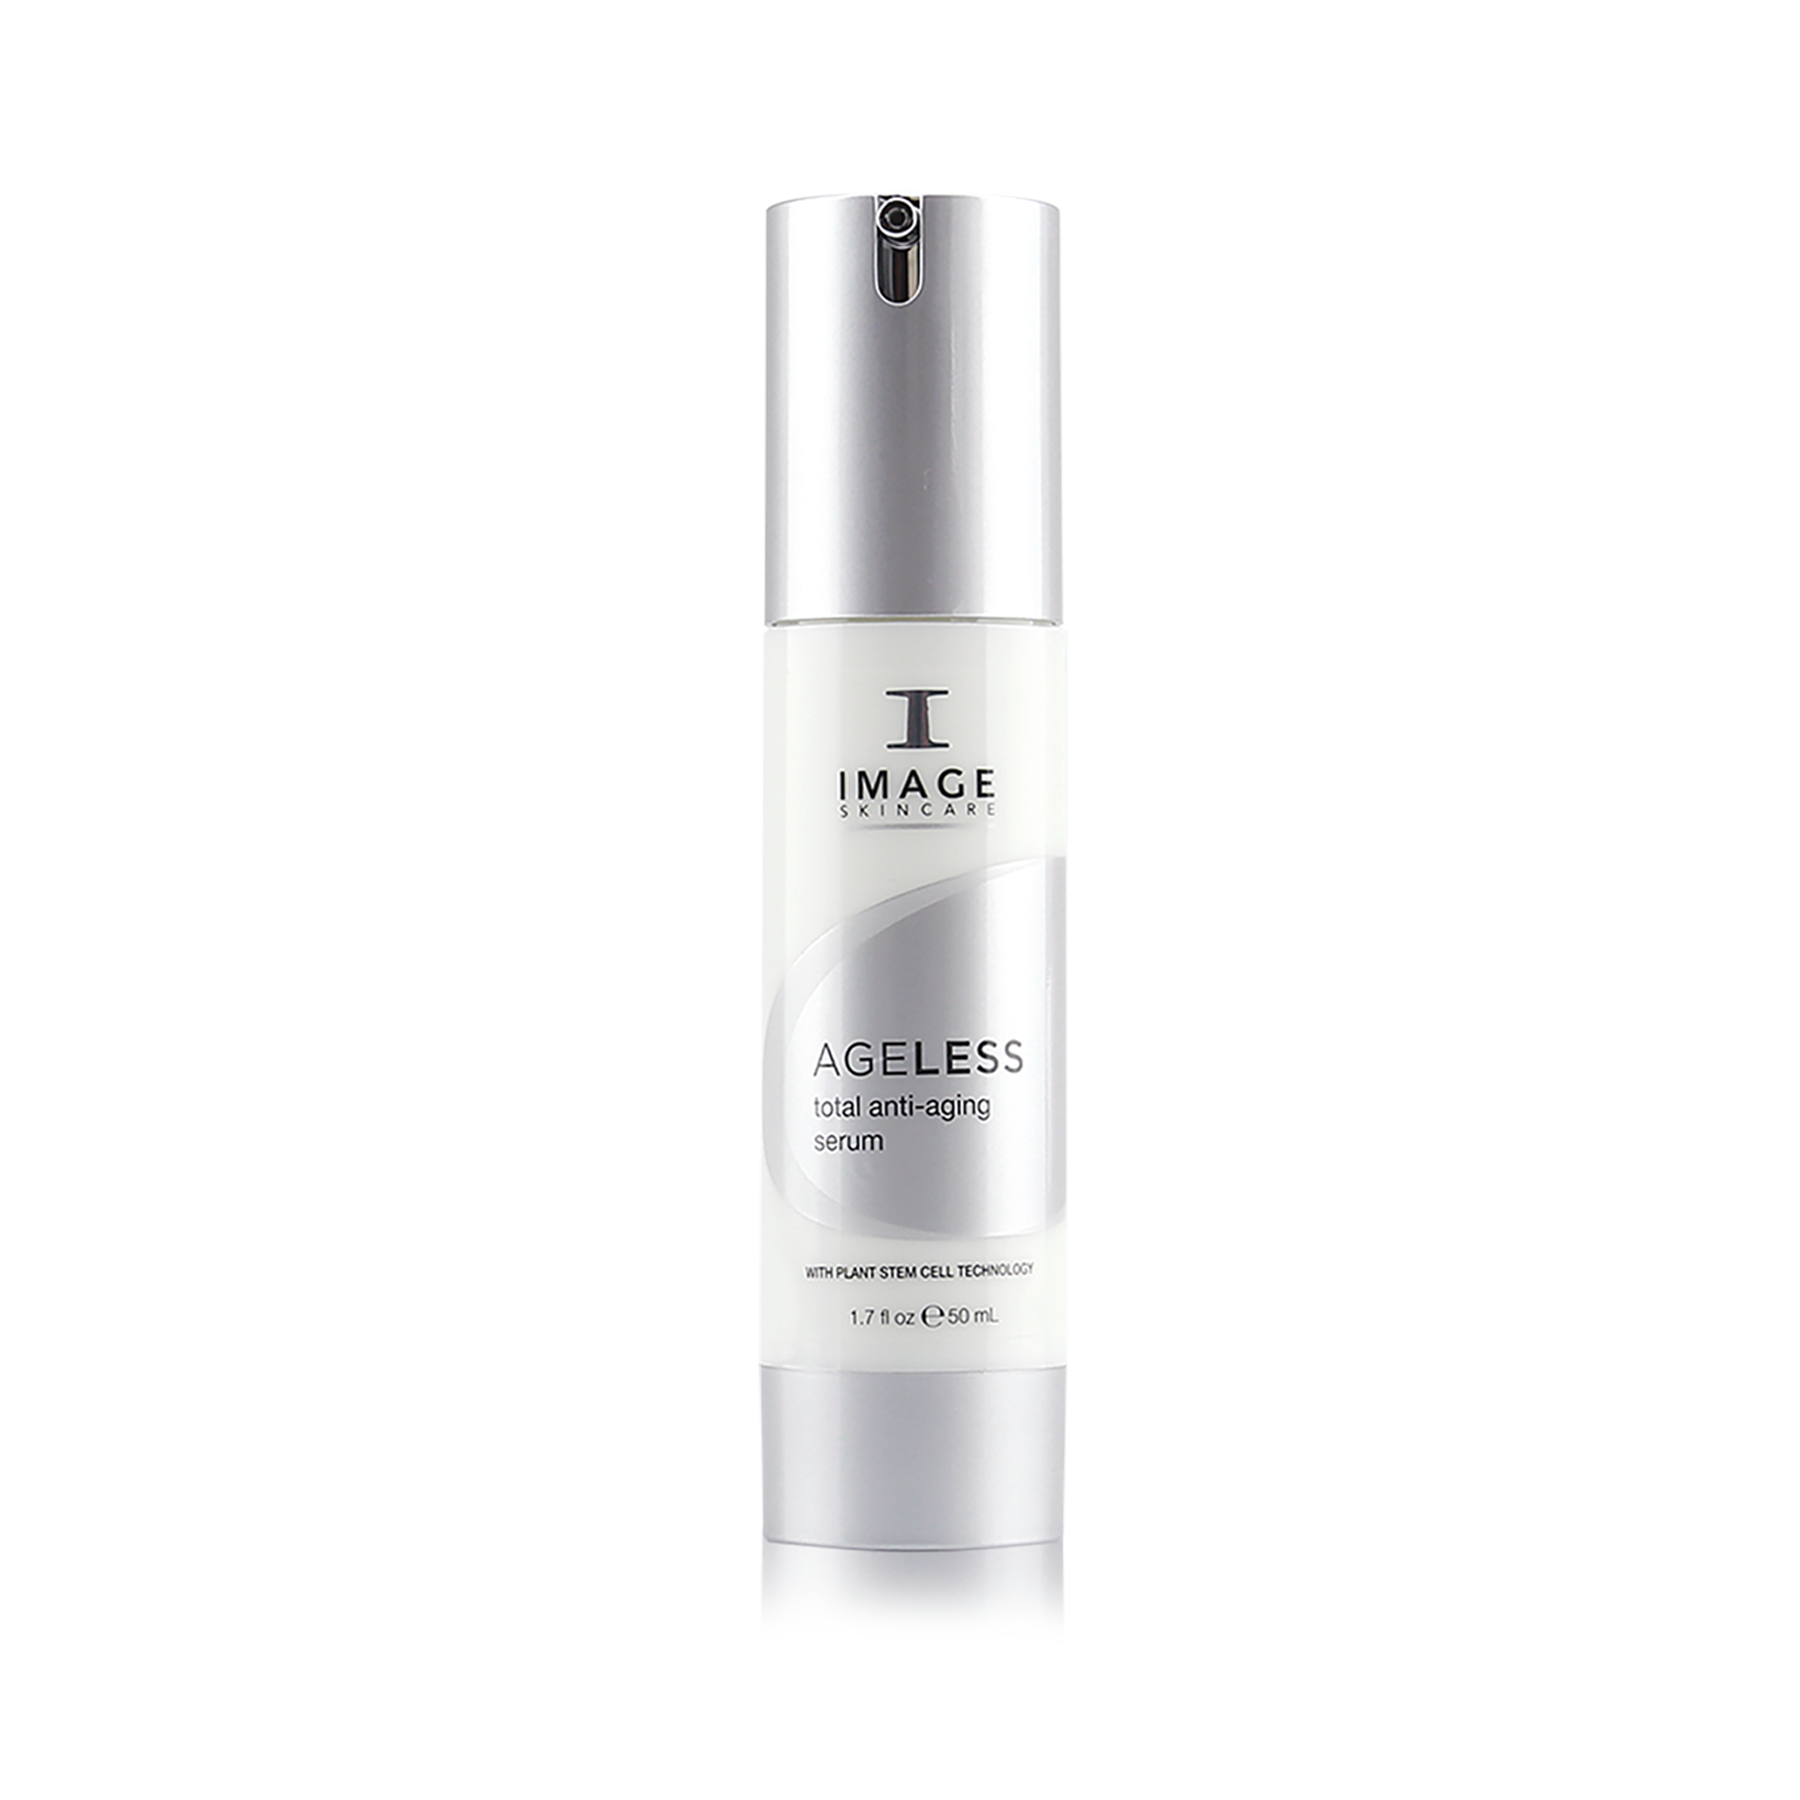 Image Skincare AGELESS Total Anti-Aging Serum